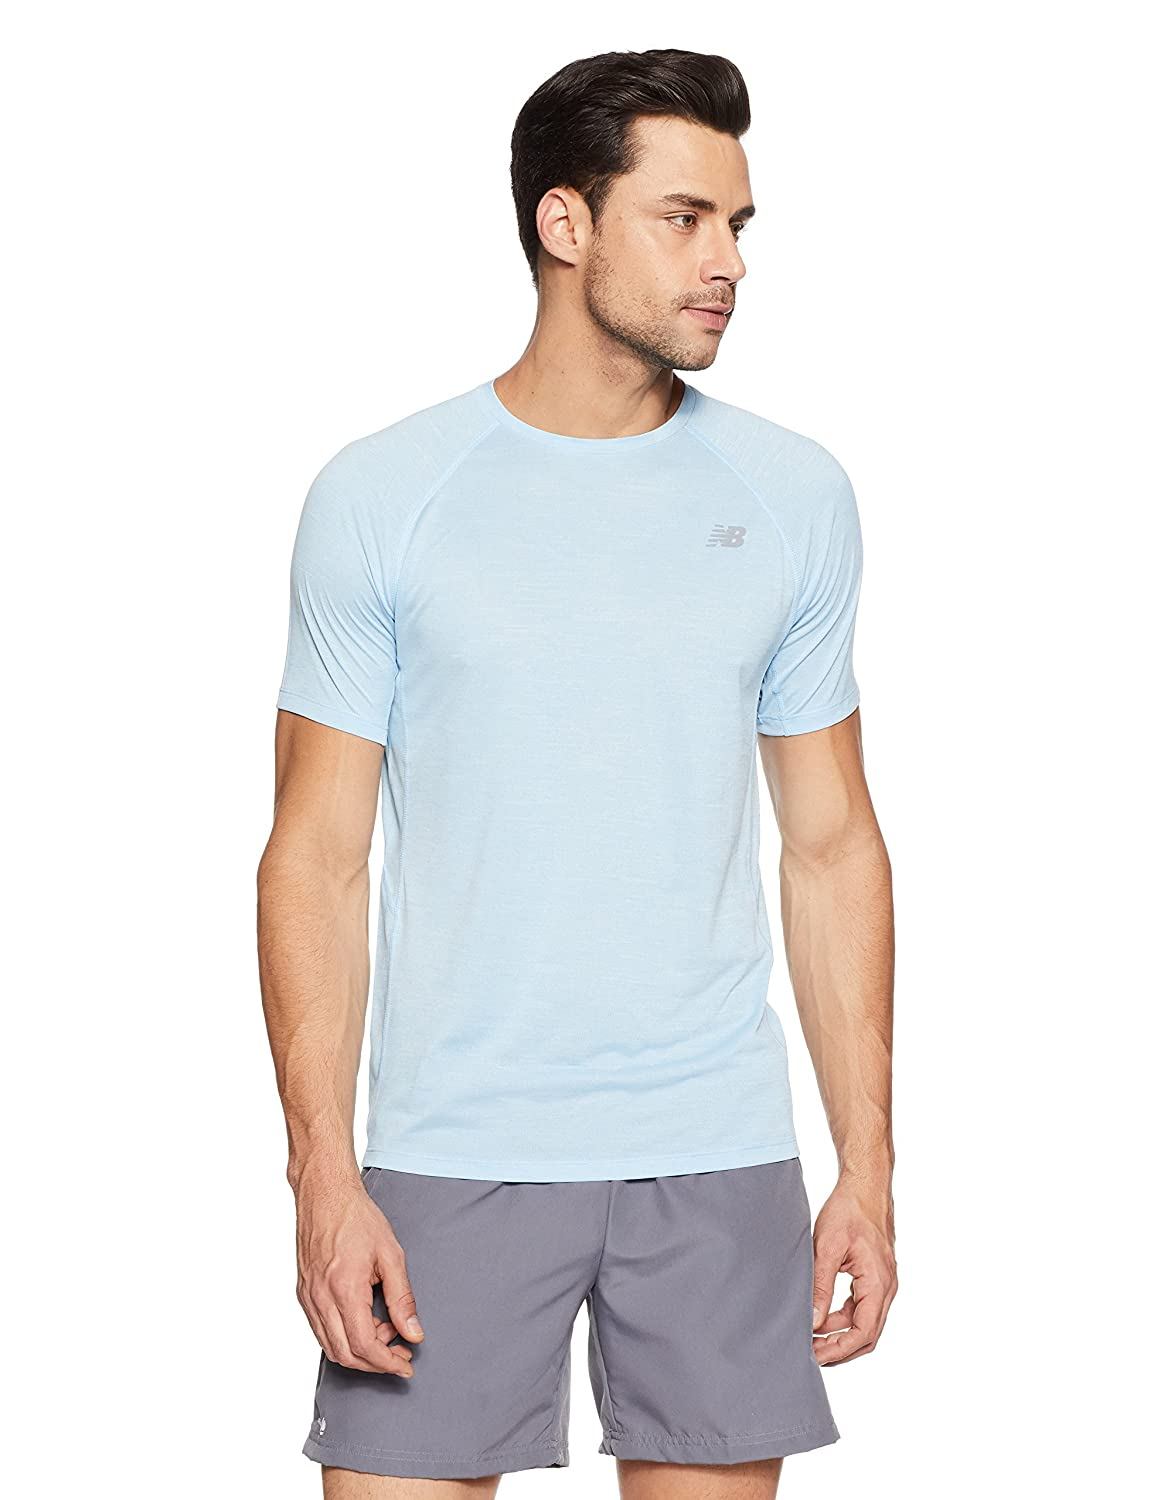 New Balance Herren Tenacity Short Sleeve T-Shirt